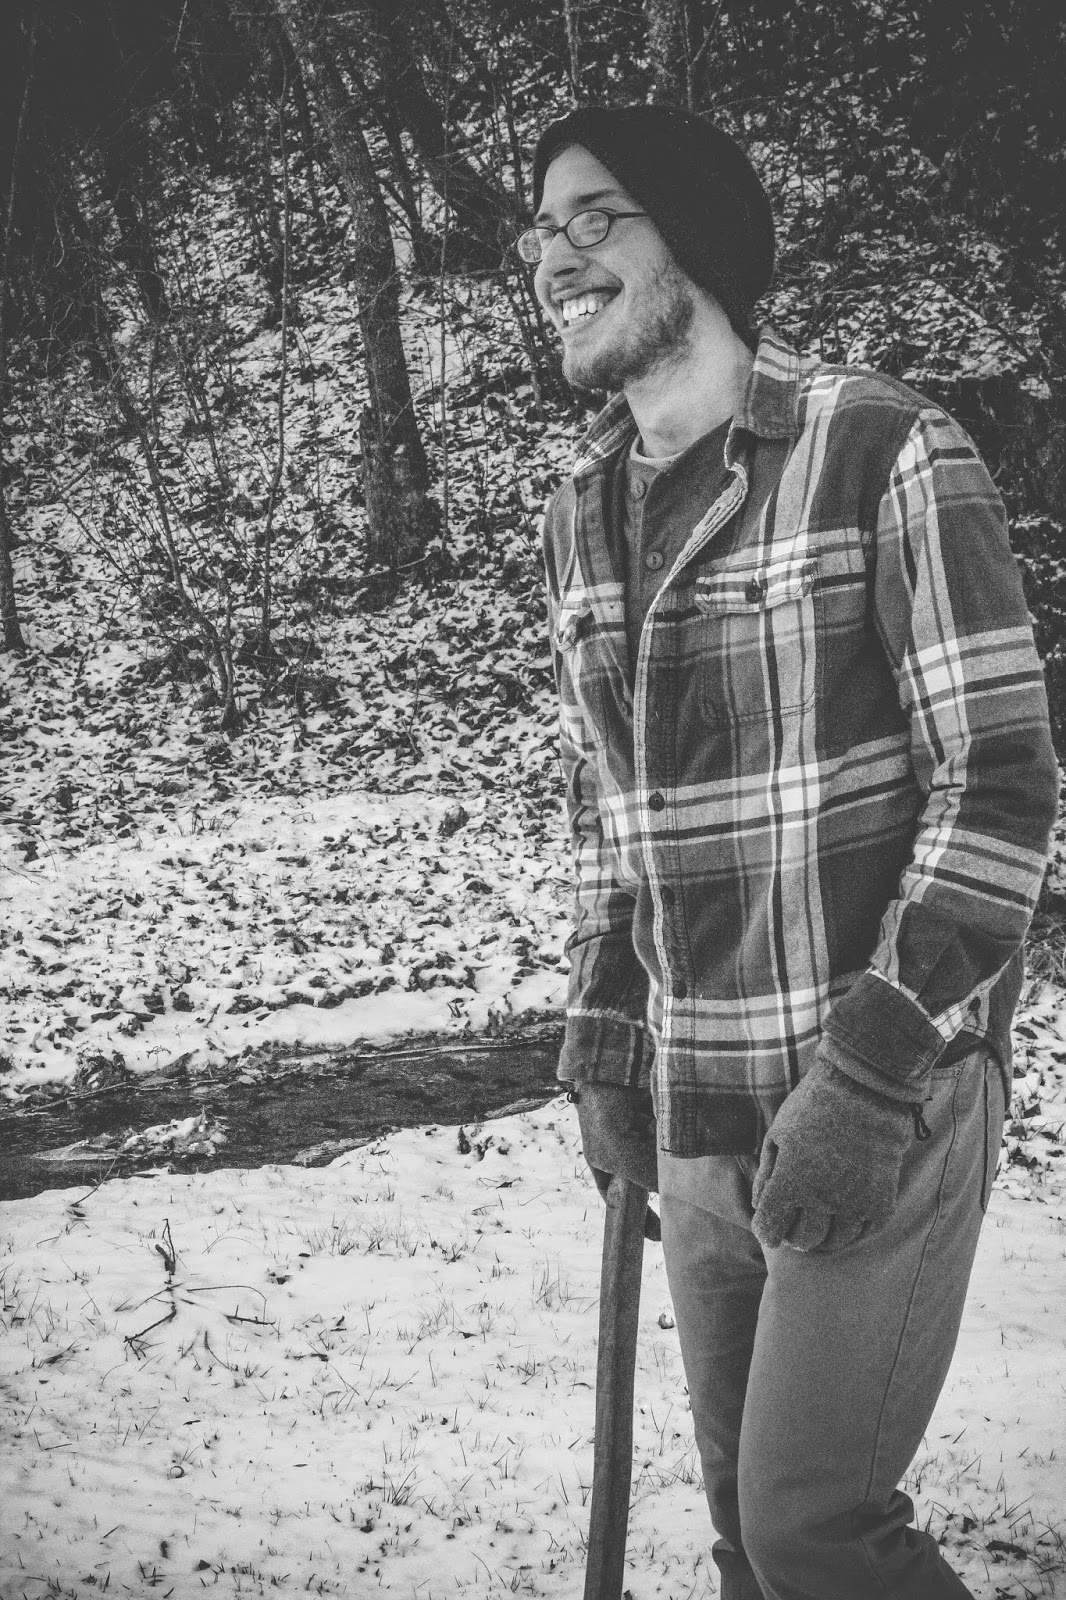 are we out of the woods yet snow georgia outdoors winter photography trees ax axe flannel beanie glasses smile laughter man attractive